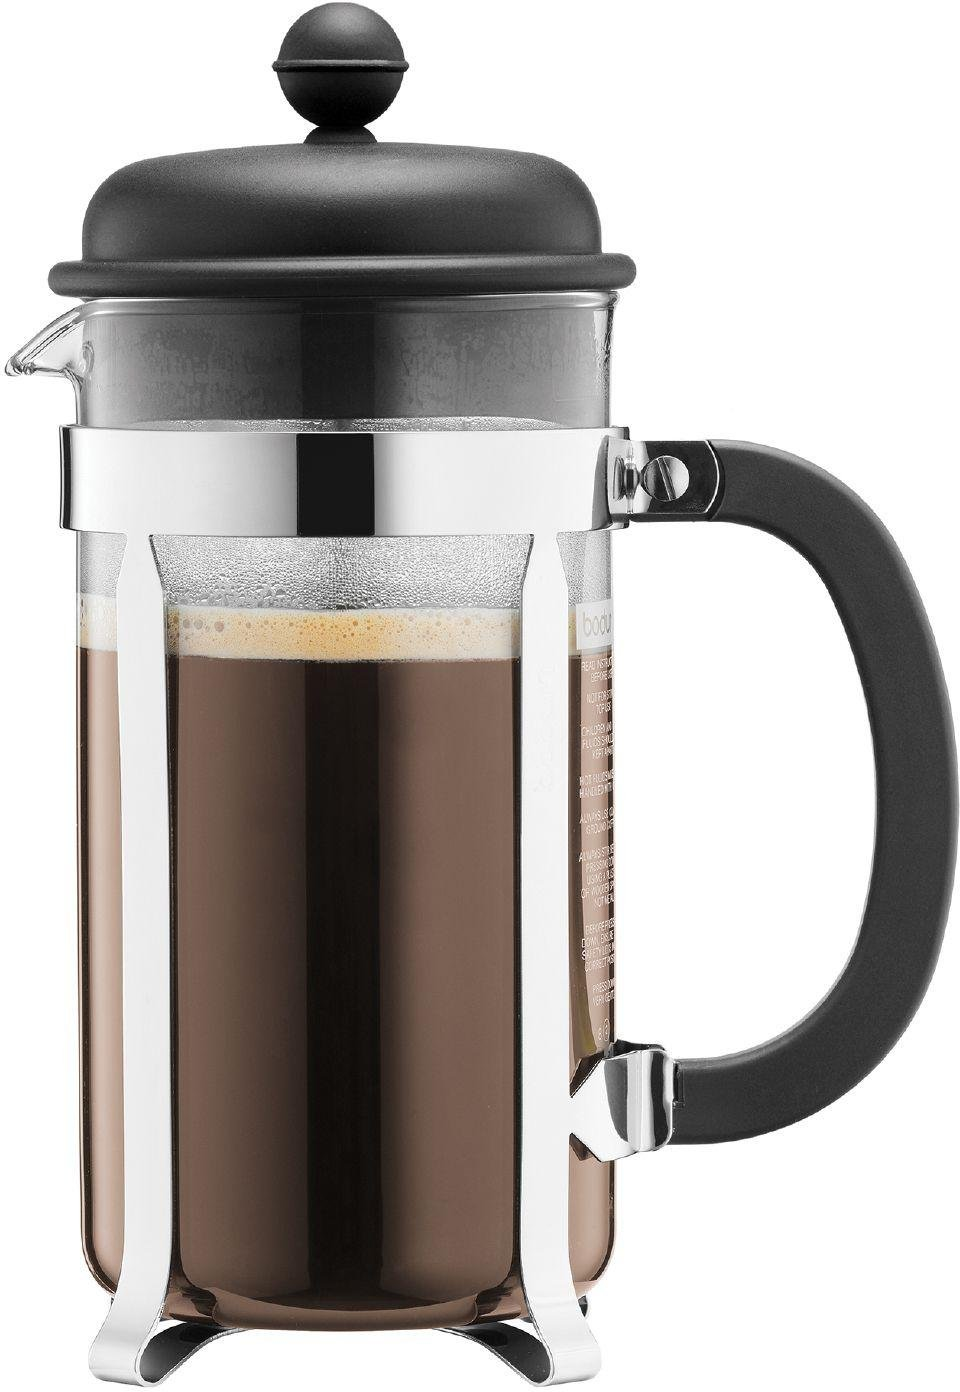 Bodum Caffettiera 8 Cup Coffee Maker  - Black